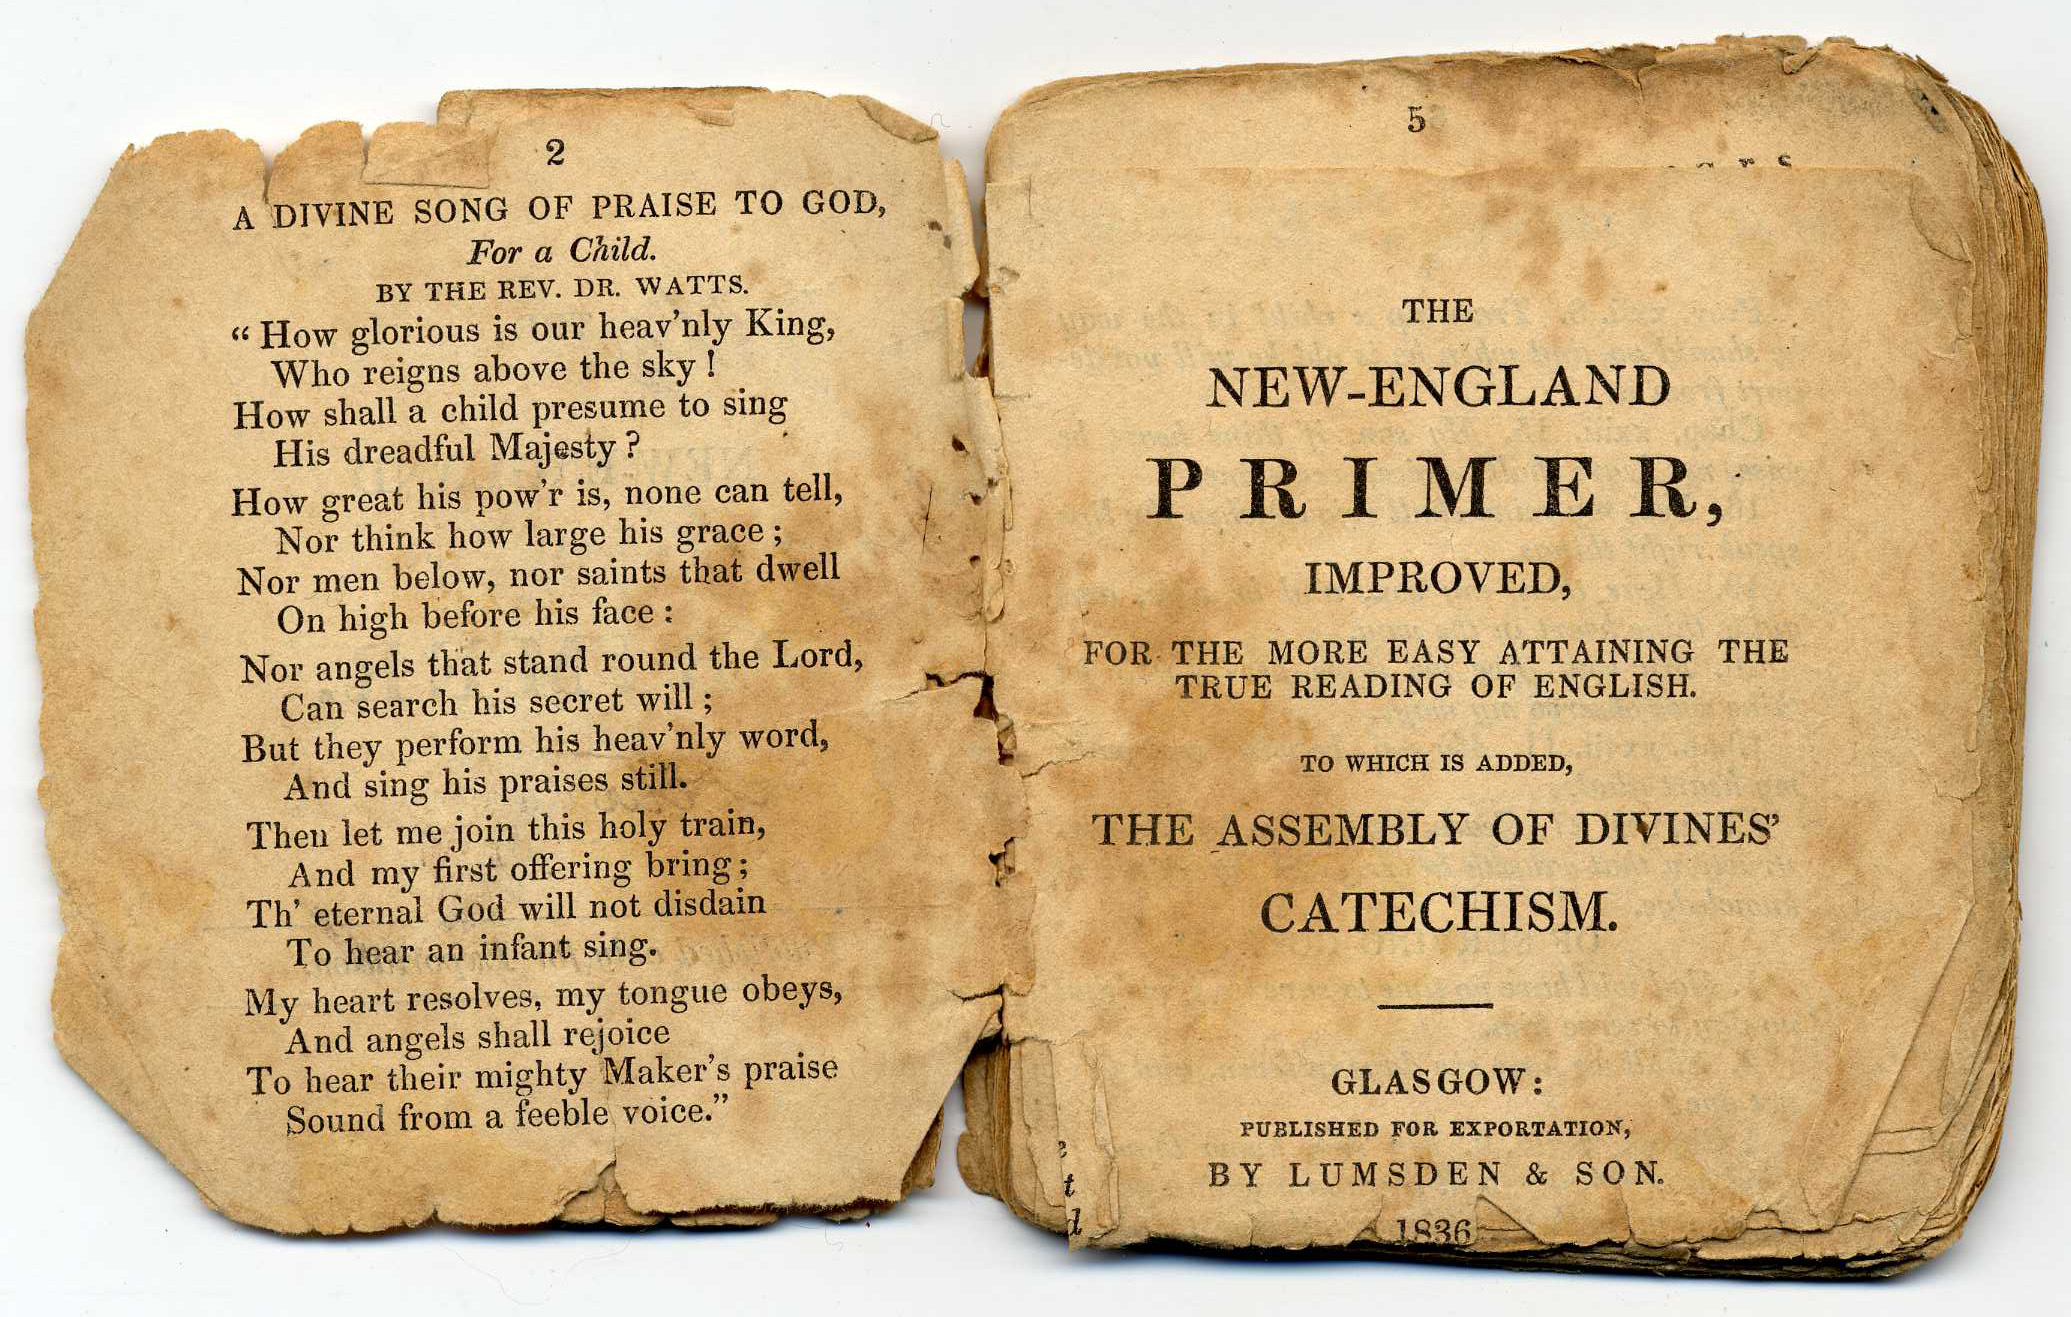 the new england primer The new england primer was the first reading primer designed for the american colonies it became the most successful educational textbook published in 18th century america and it became the foundation of most schooling before the 1790s.